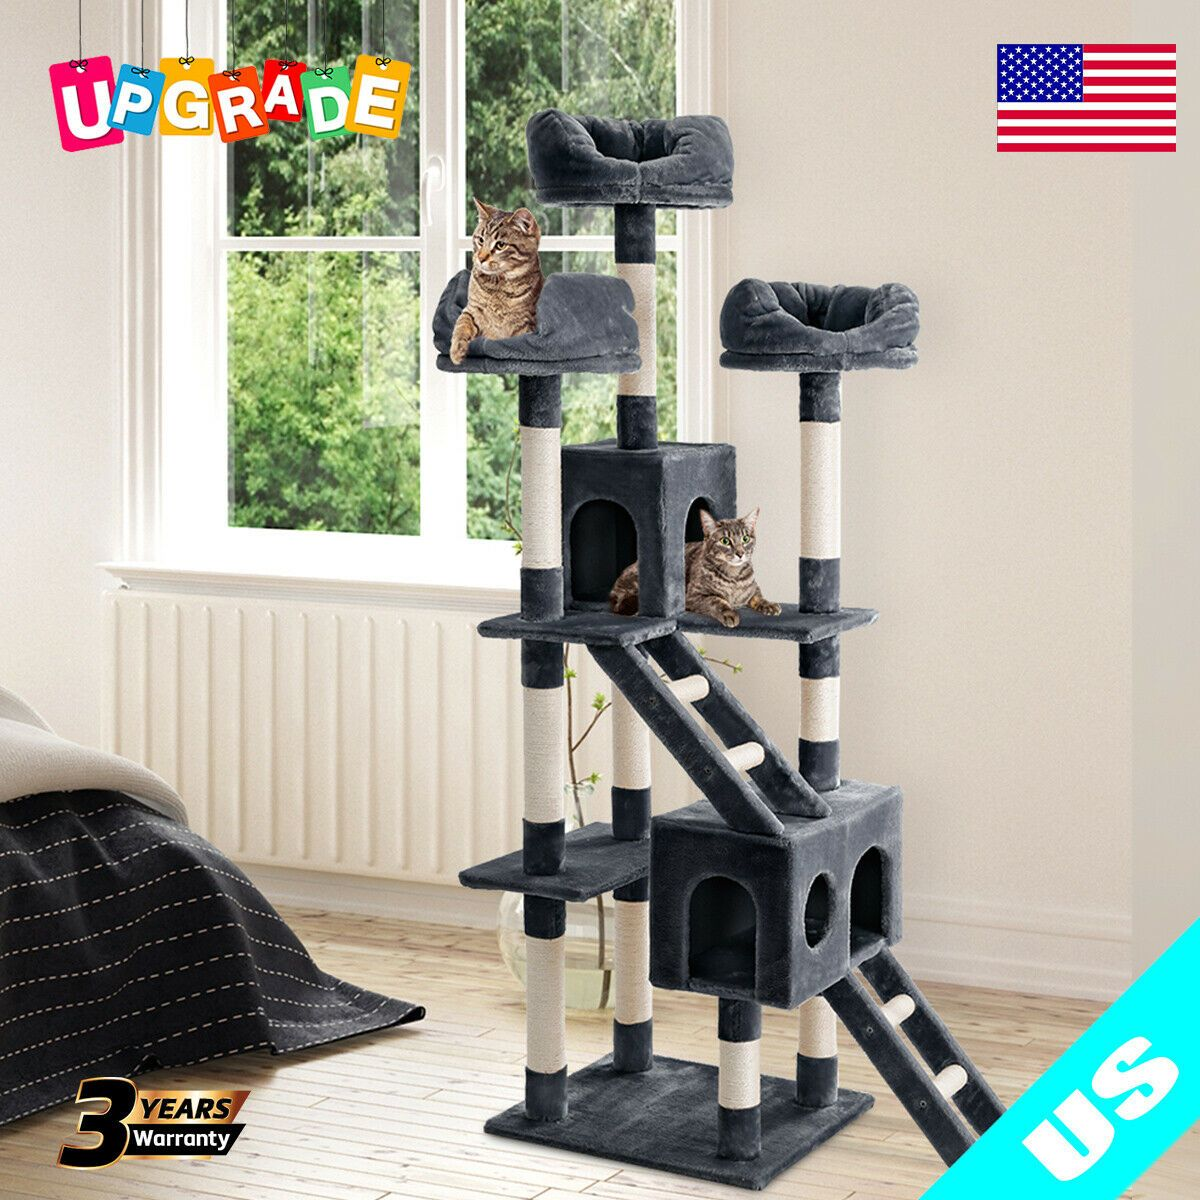 70 Cat Tree Bed Furniture Scratching Tower Post Condo Kitten Pet House Beige US  Cat Furniture  Ideas of Cat Furniture  70 Cat Tree Bed Furniture Scratching Tower Post Co...